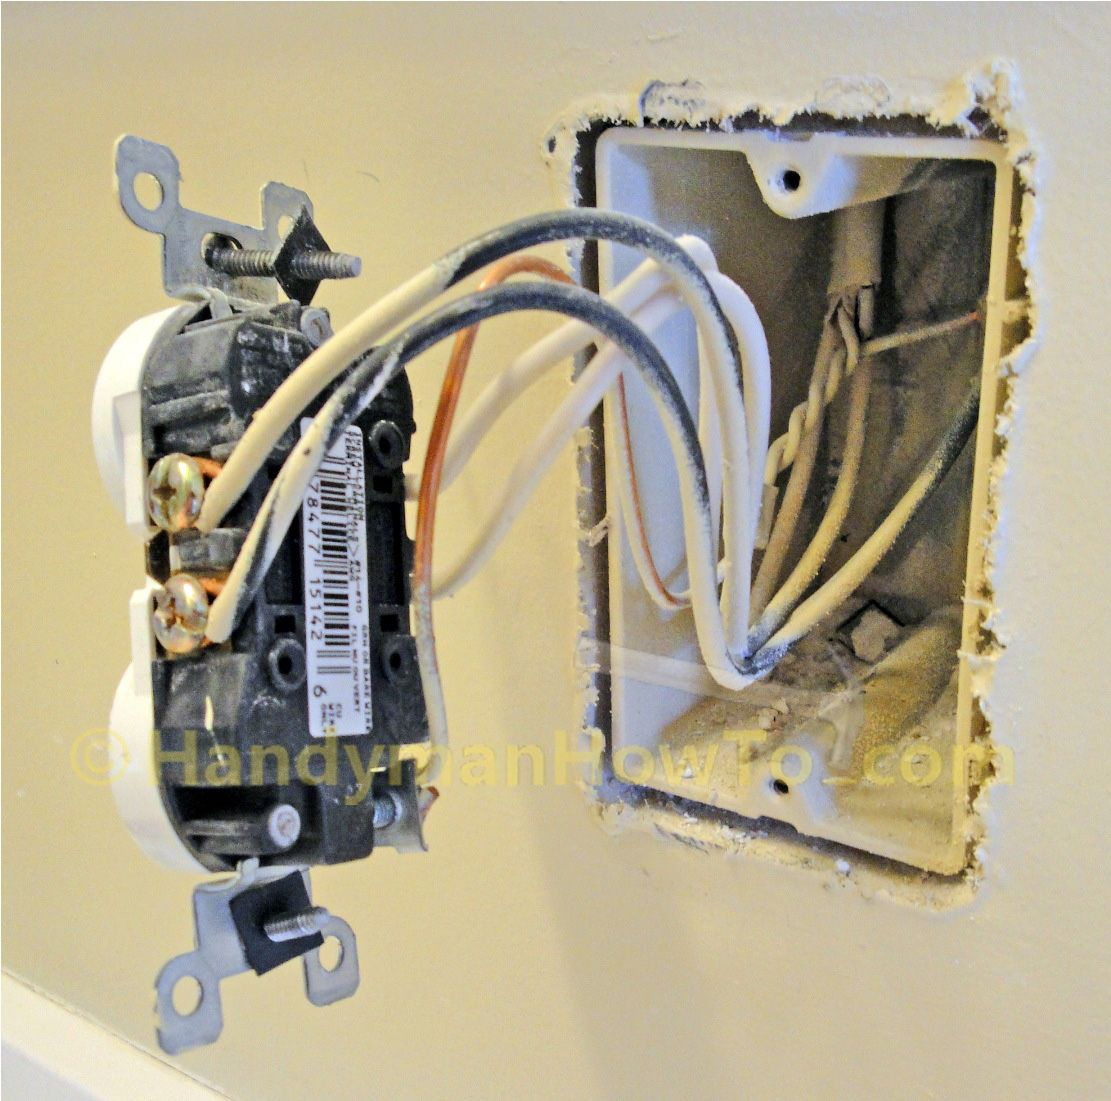 hight resolution of how to replace a worn out electrical outlet photo tutorial with parallel and series wiring diagrams